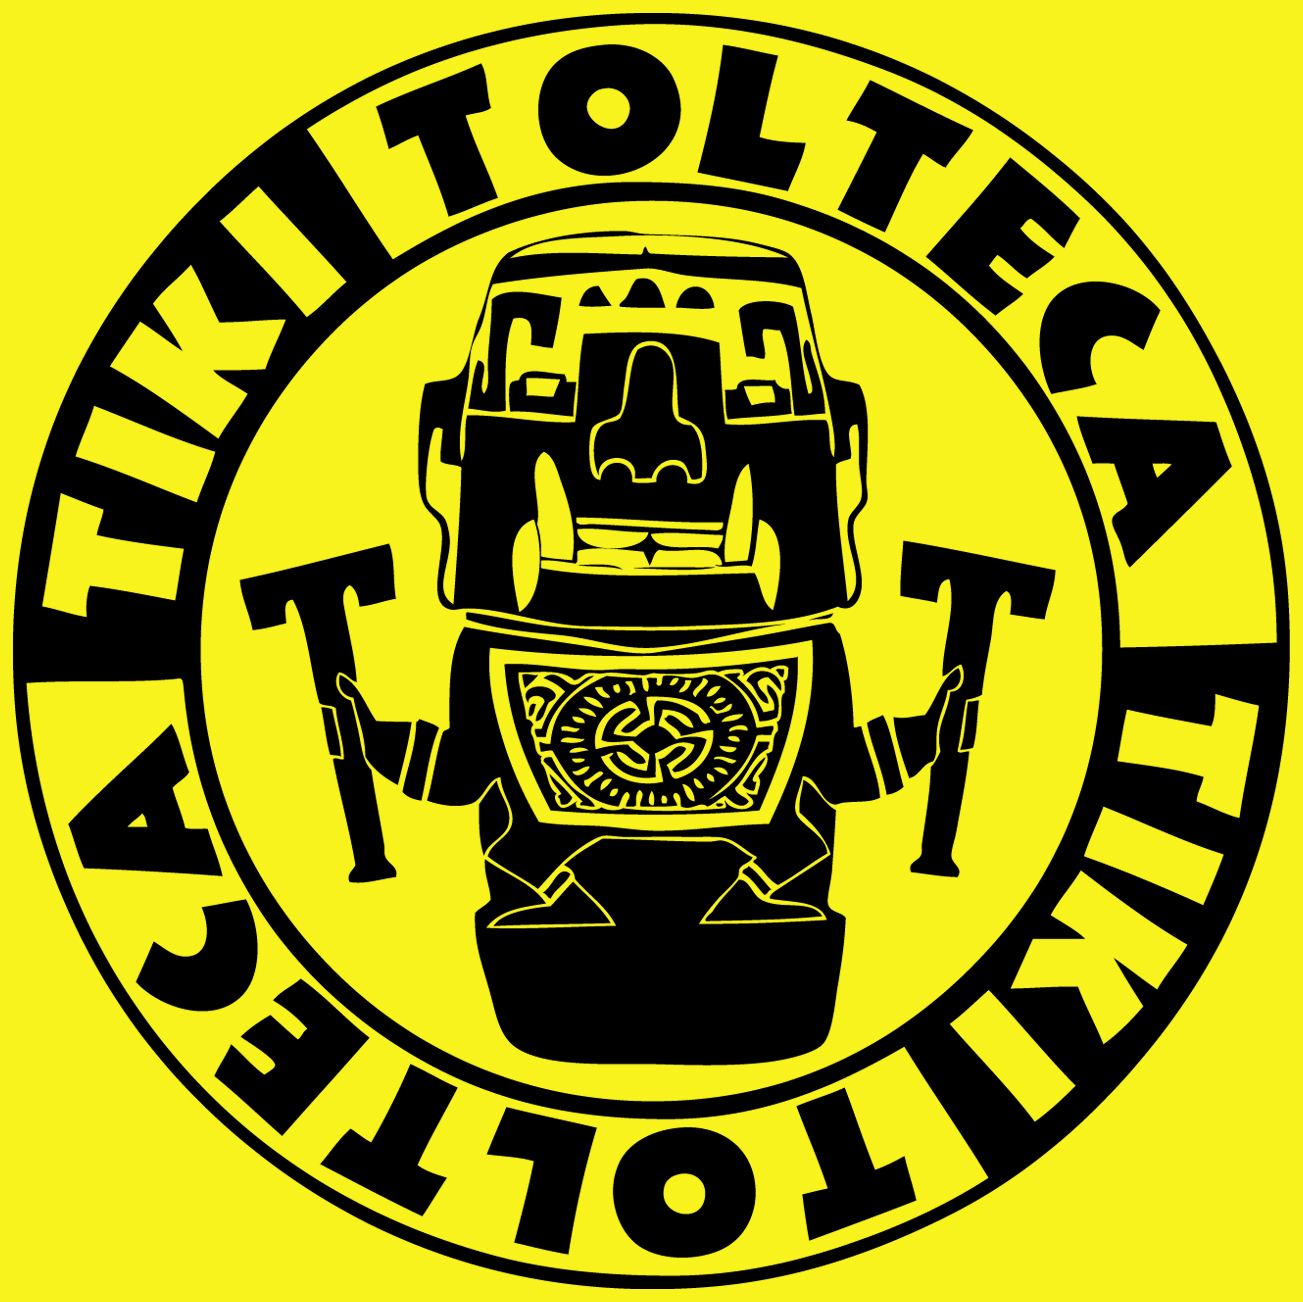 Logo Design, Brand Package and Promotions for Tiki Tolteca